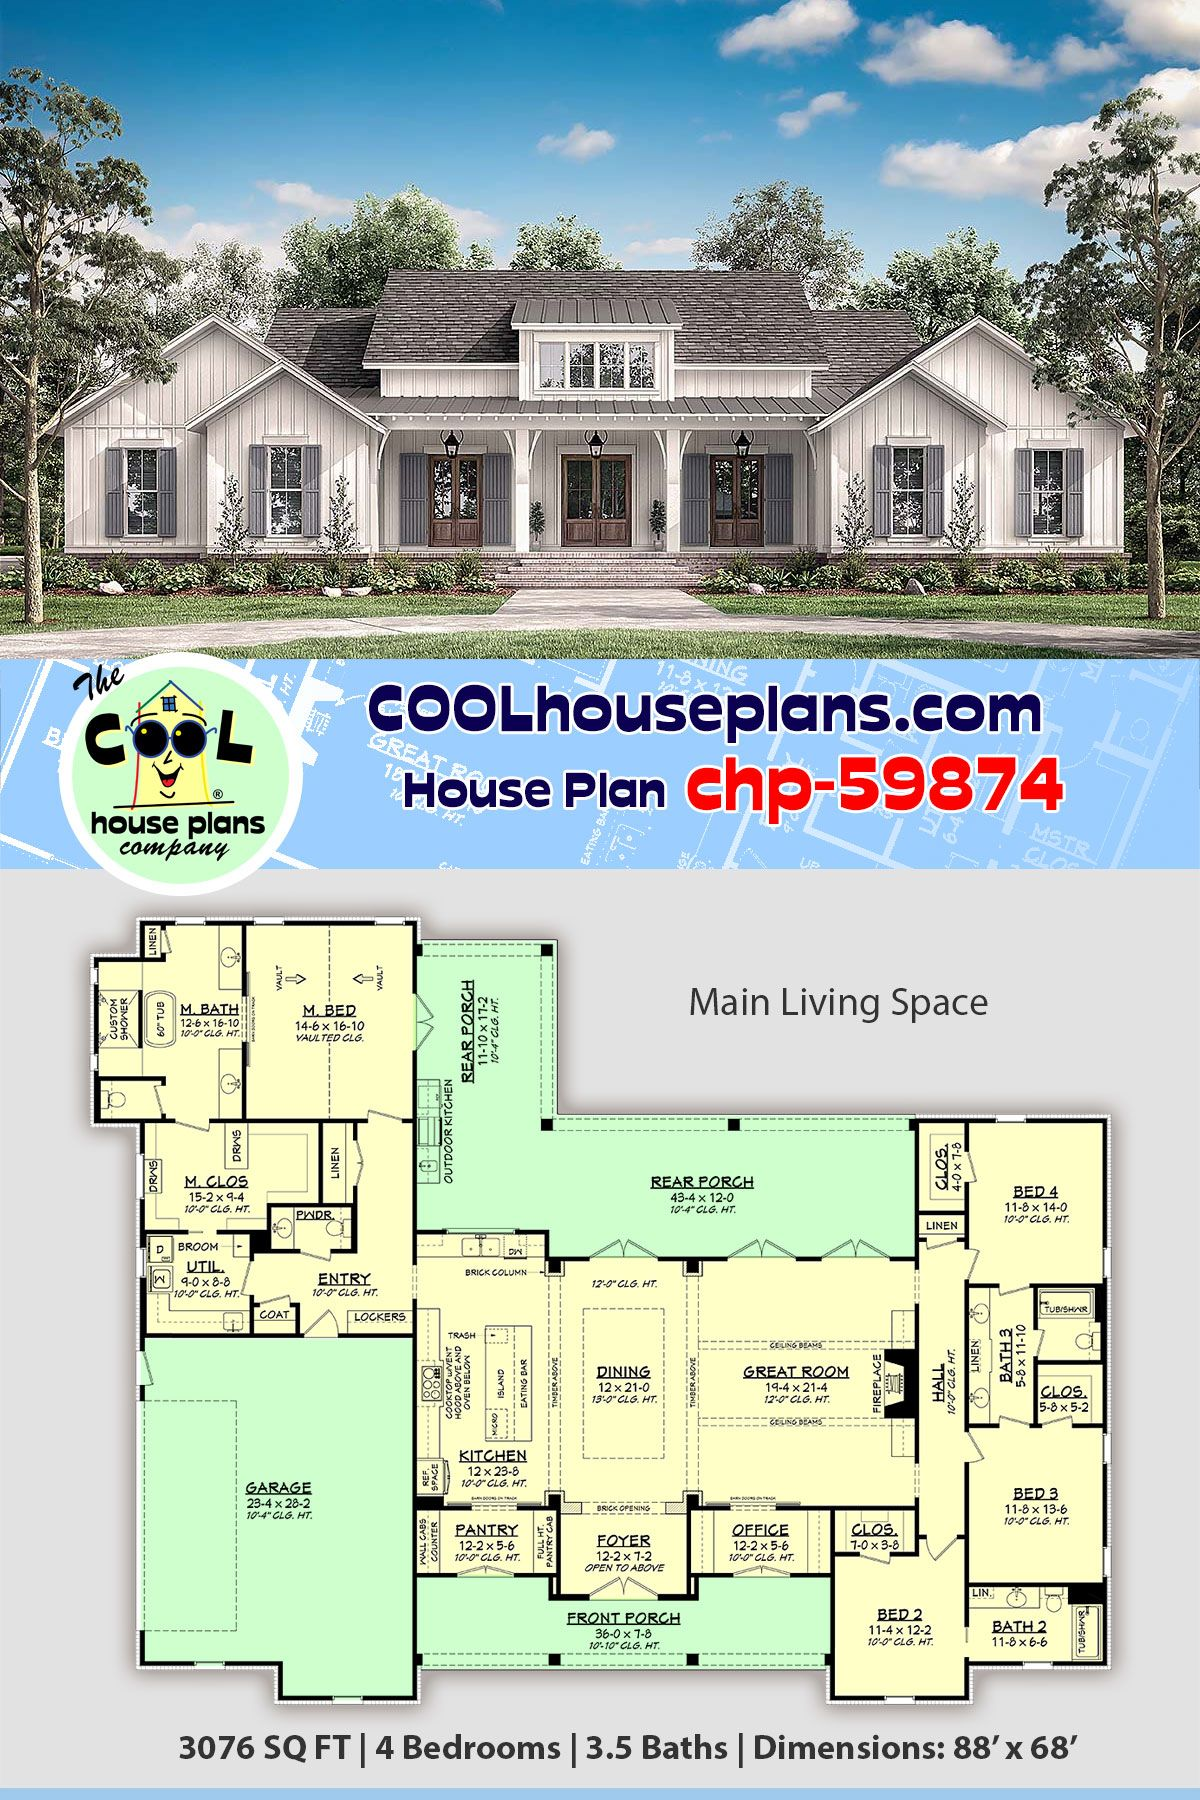 4 Bedroom Modern Farmhouse With 3 5 Bathrooms And An Outdoor Living Space At Cool House Plan Farmhouse Style House Plans Farmhouse Style House Best House Plans